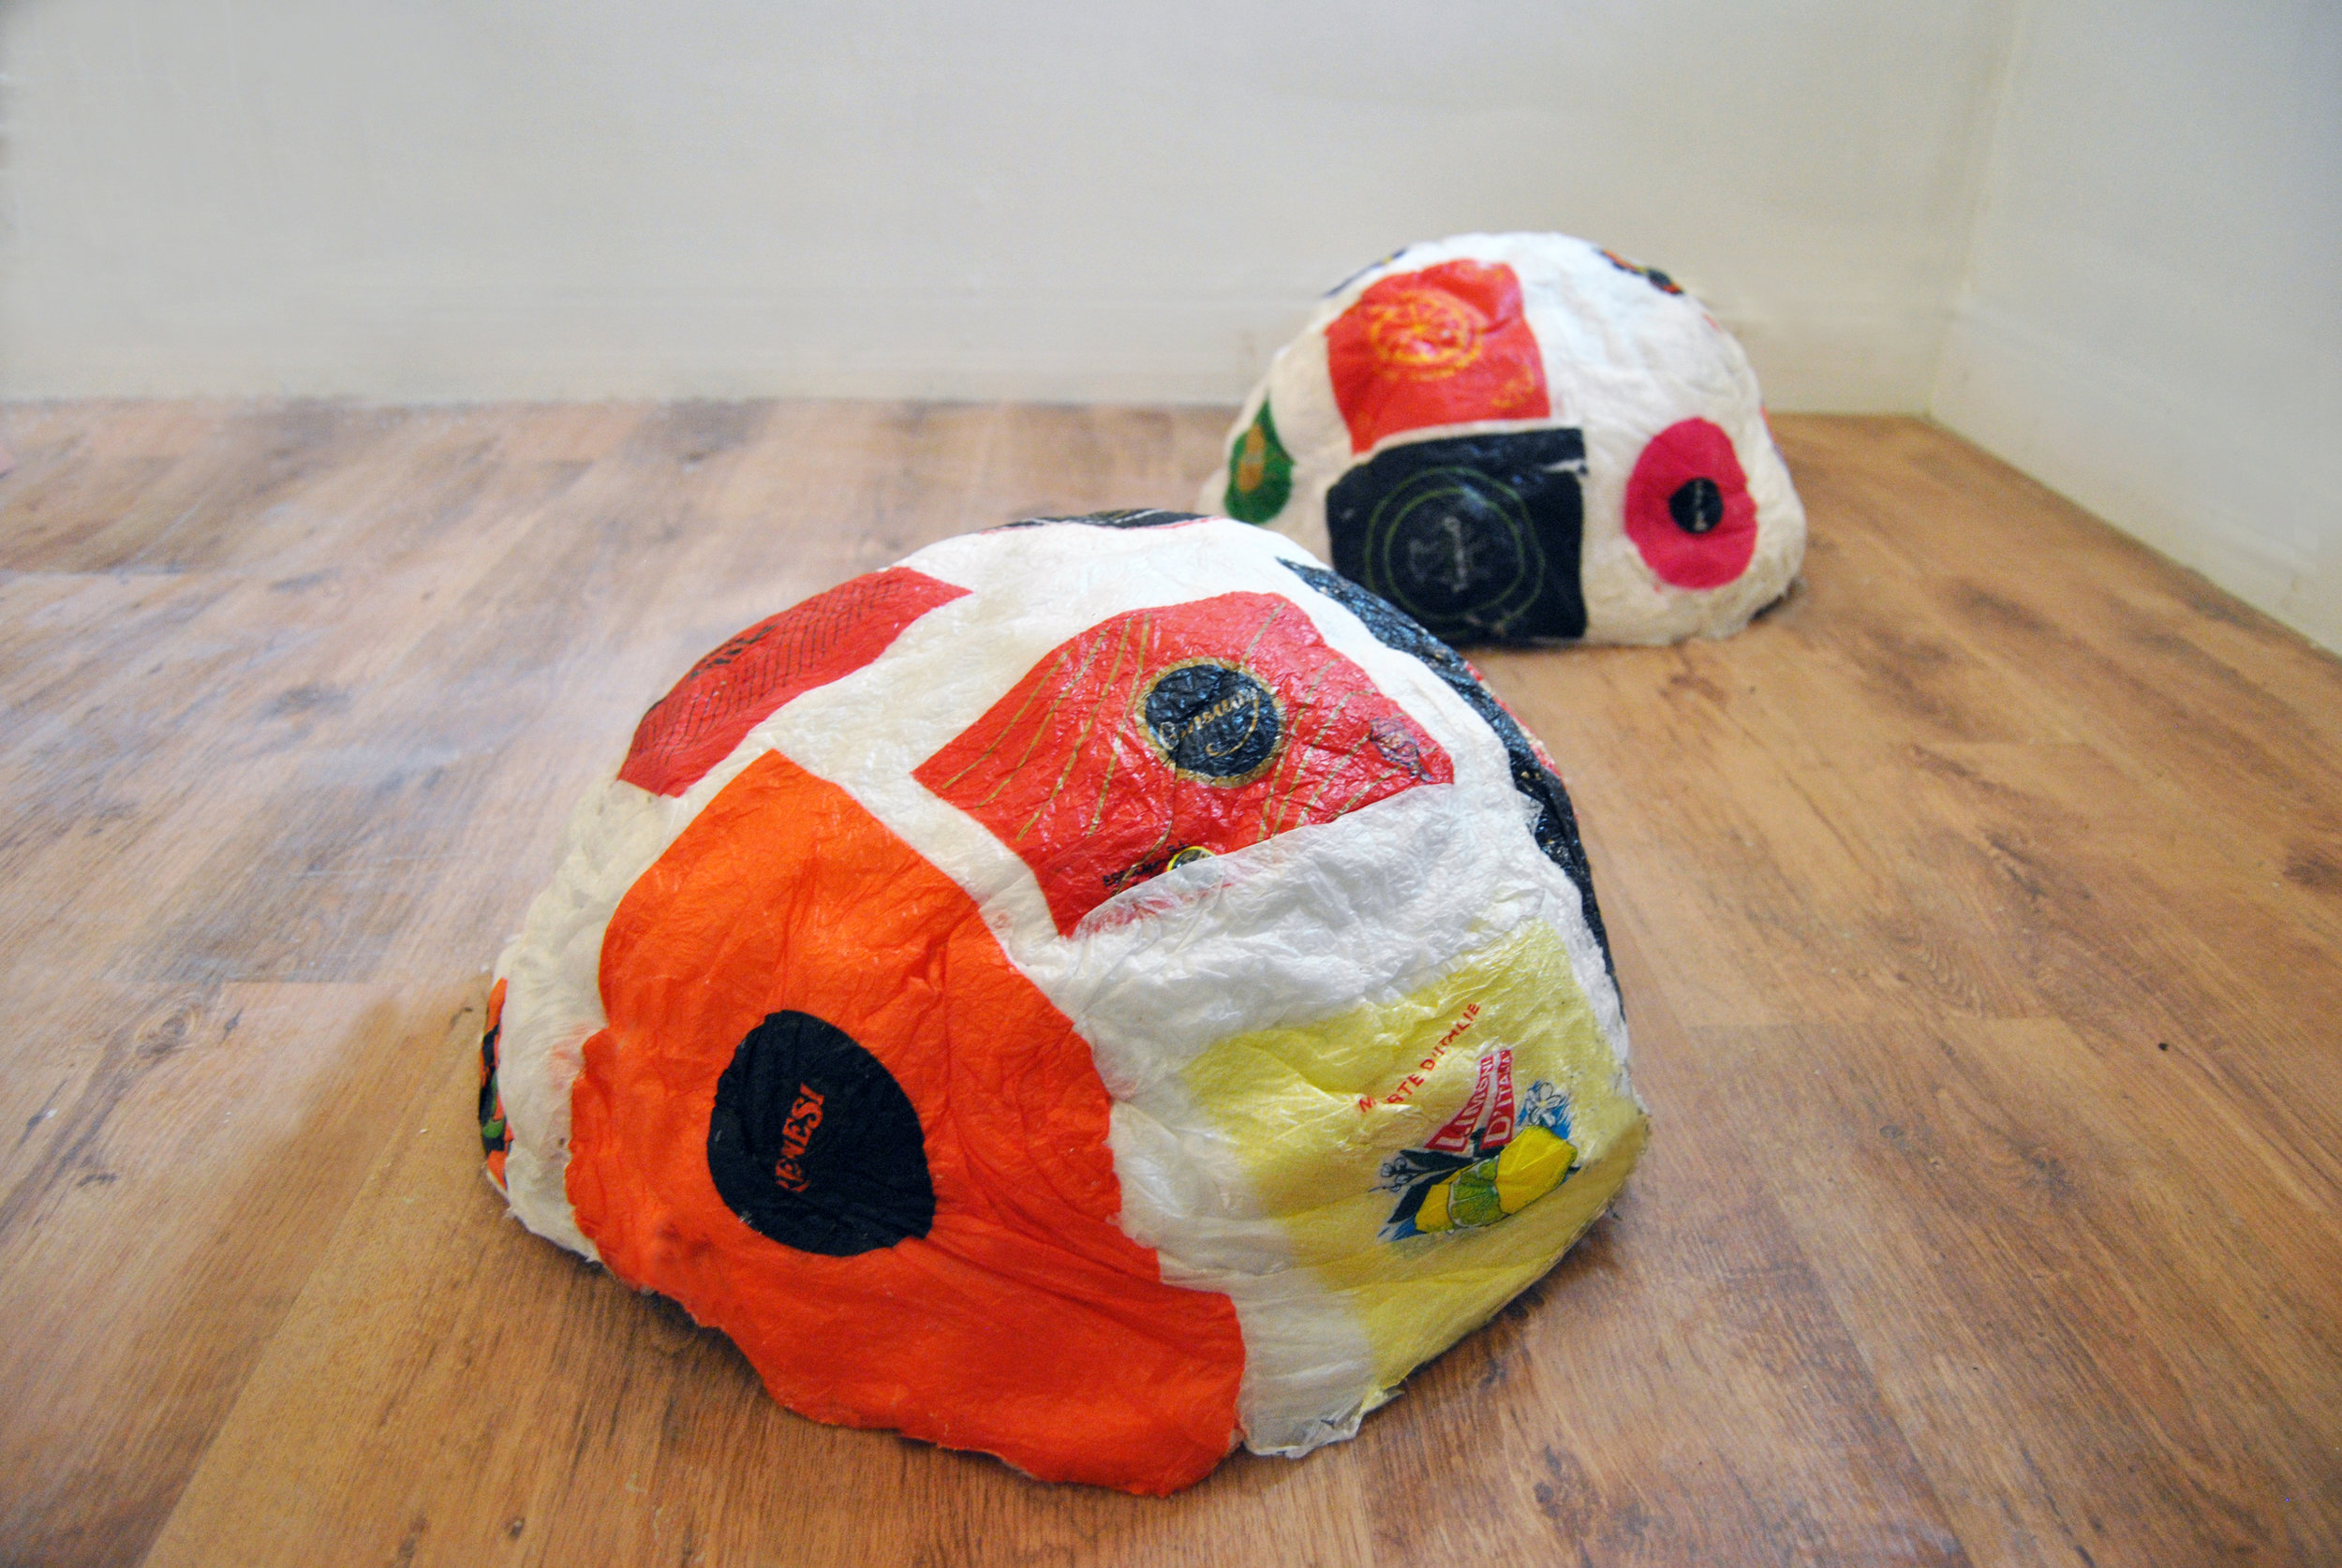 Citrus Wrapper Mounds No. 3 & 4, Citrus Wrappers, Thread, Wax, Plaster, November 2015